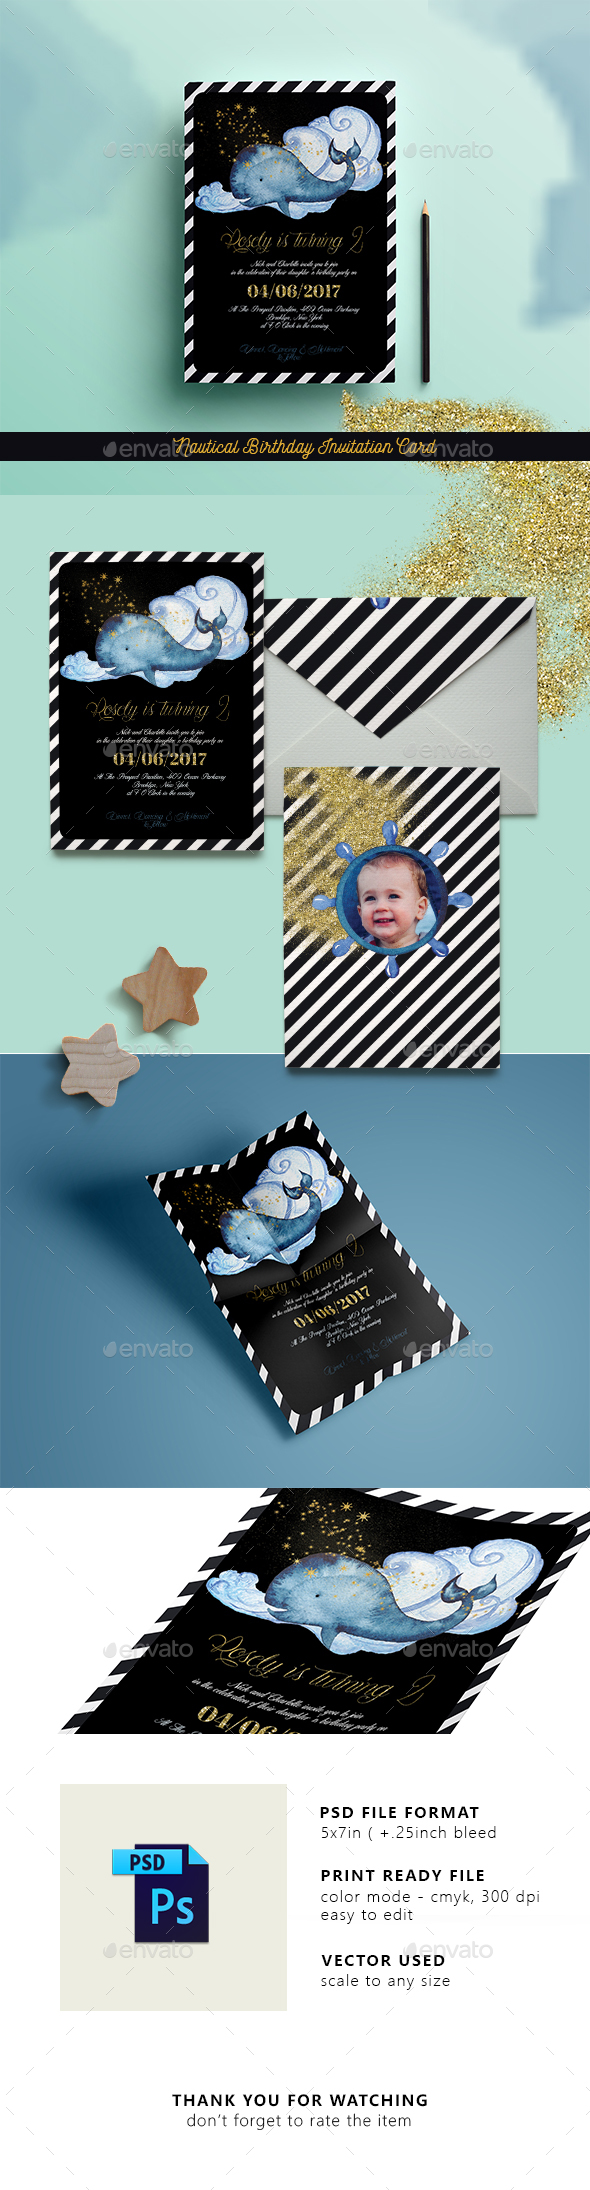 Nautical Birthday Invitation Card - Weddings Cards & Invites